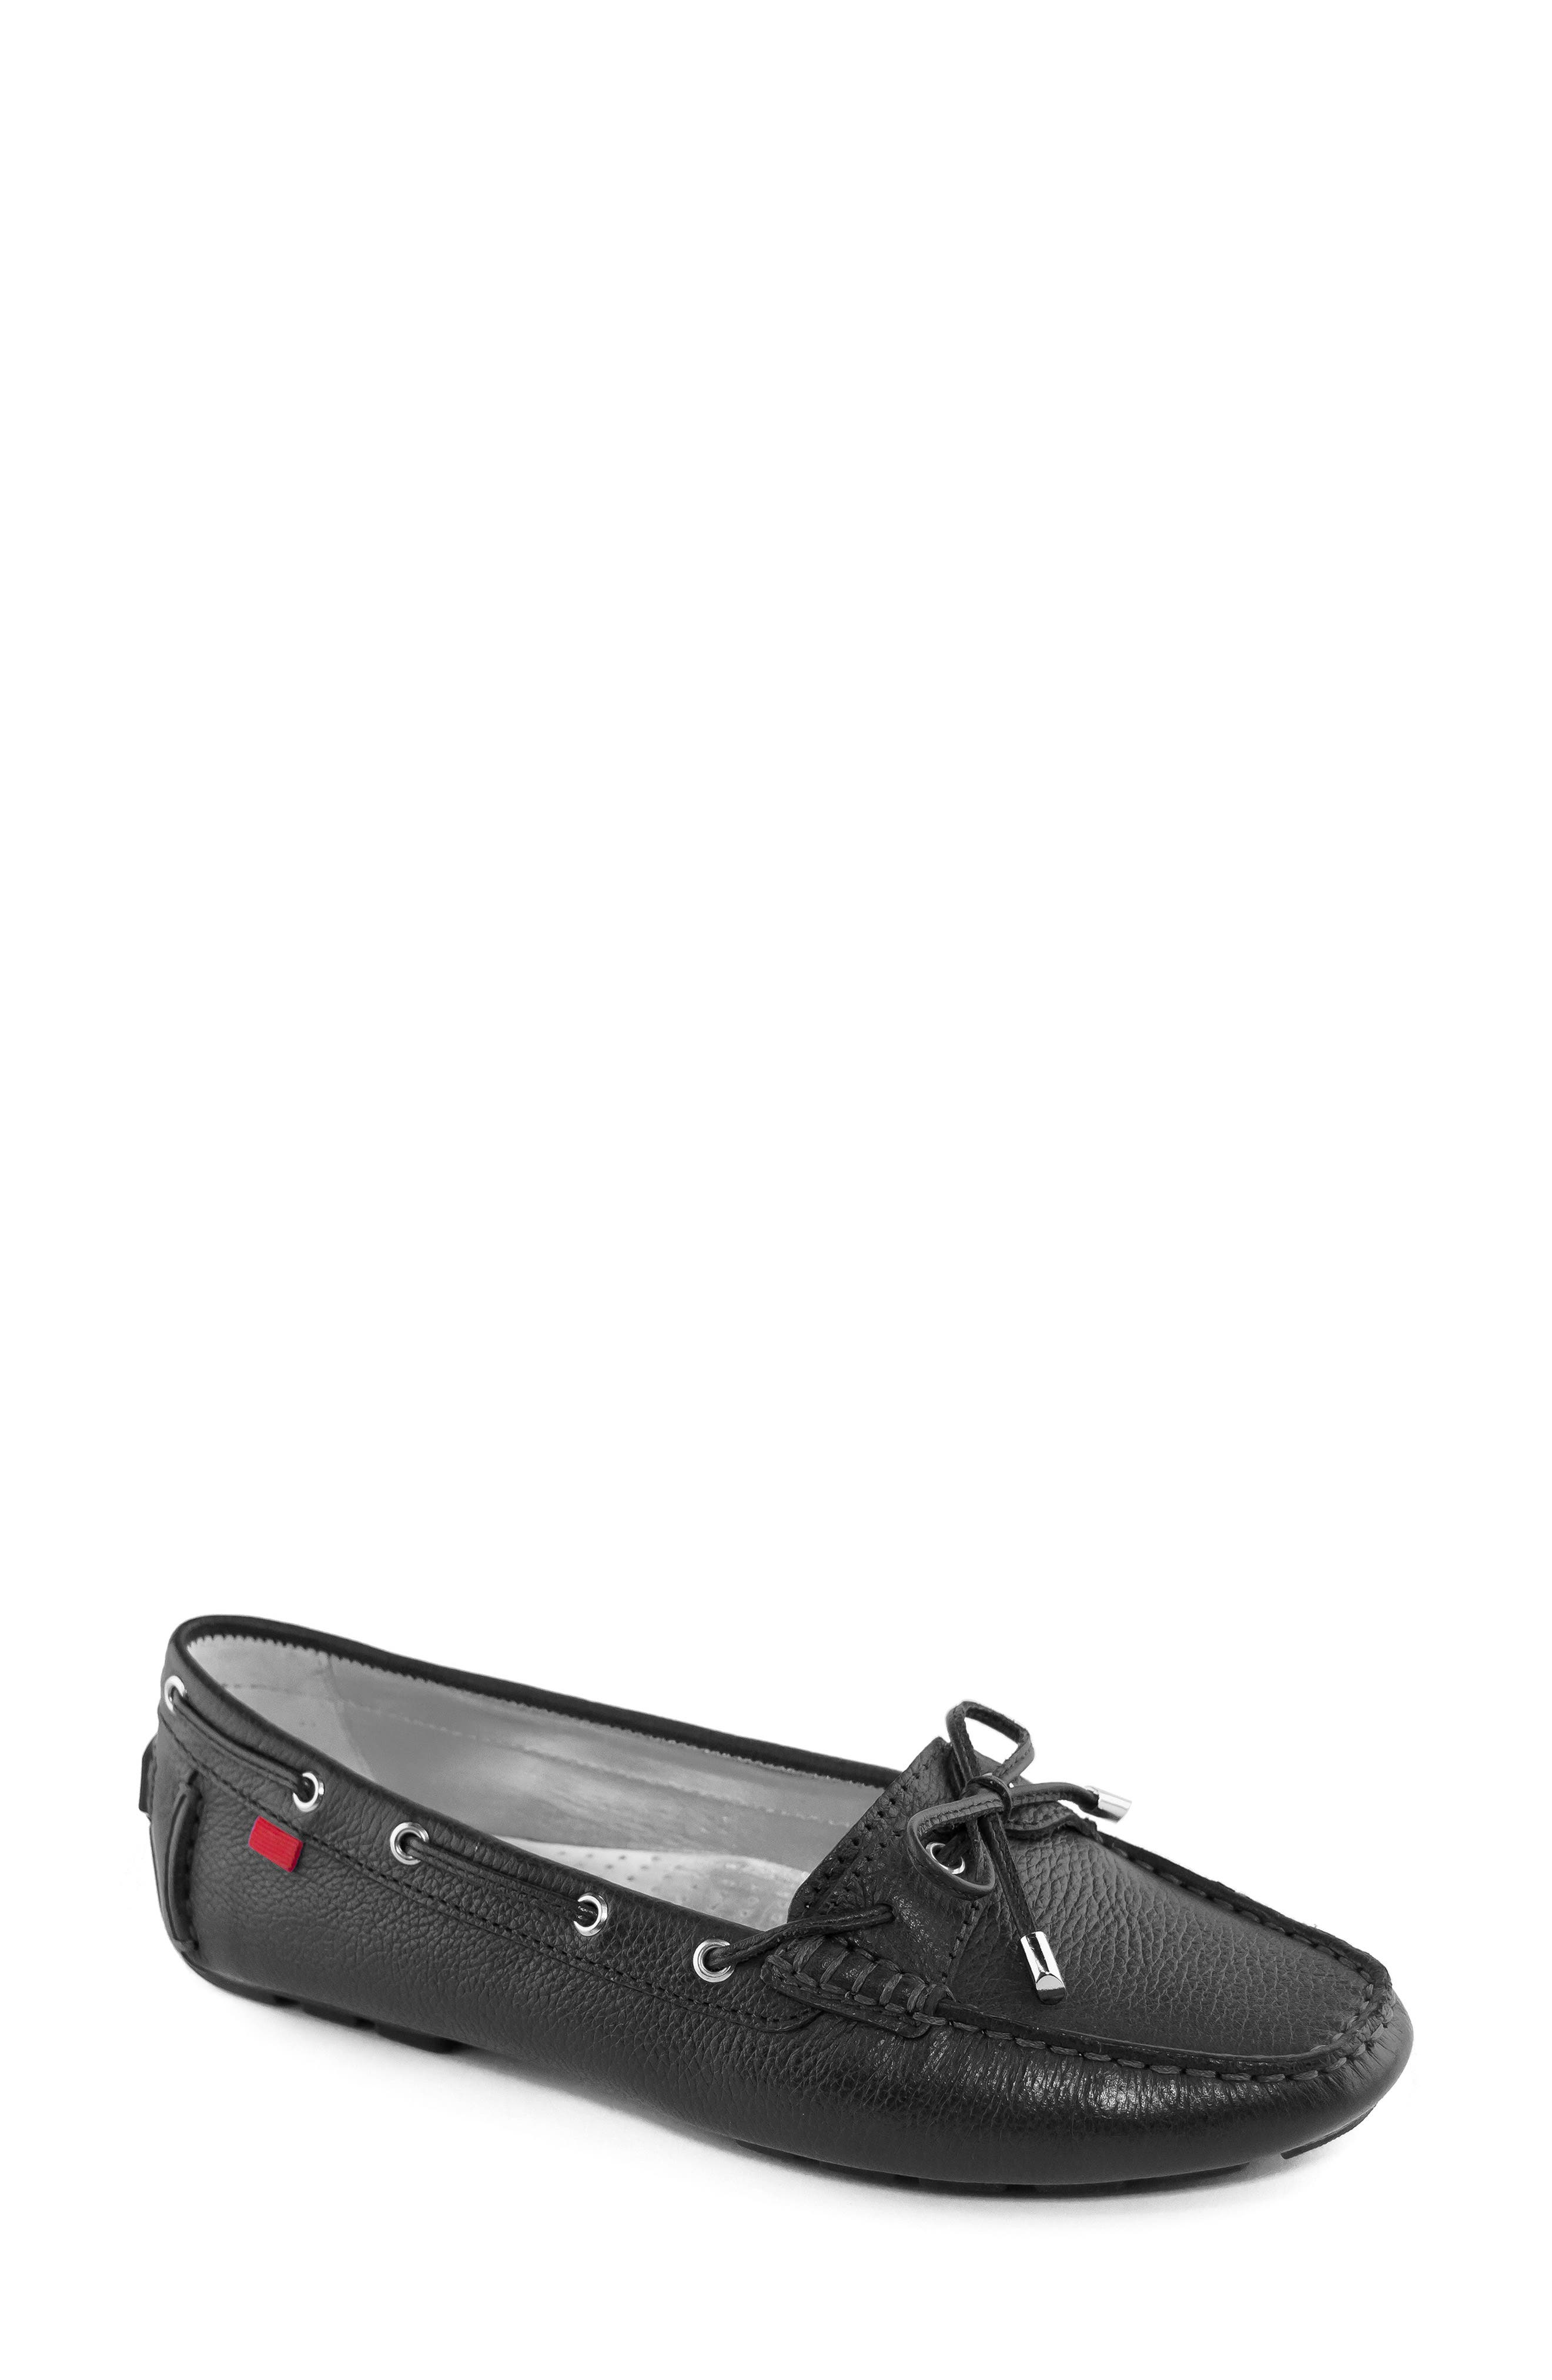 MARC JOSEPH NEW YORK, Rockaway Loafer, Main thumbnail 1, color, BLACK LEATHER